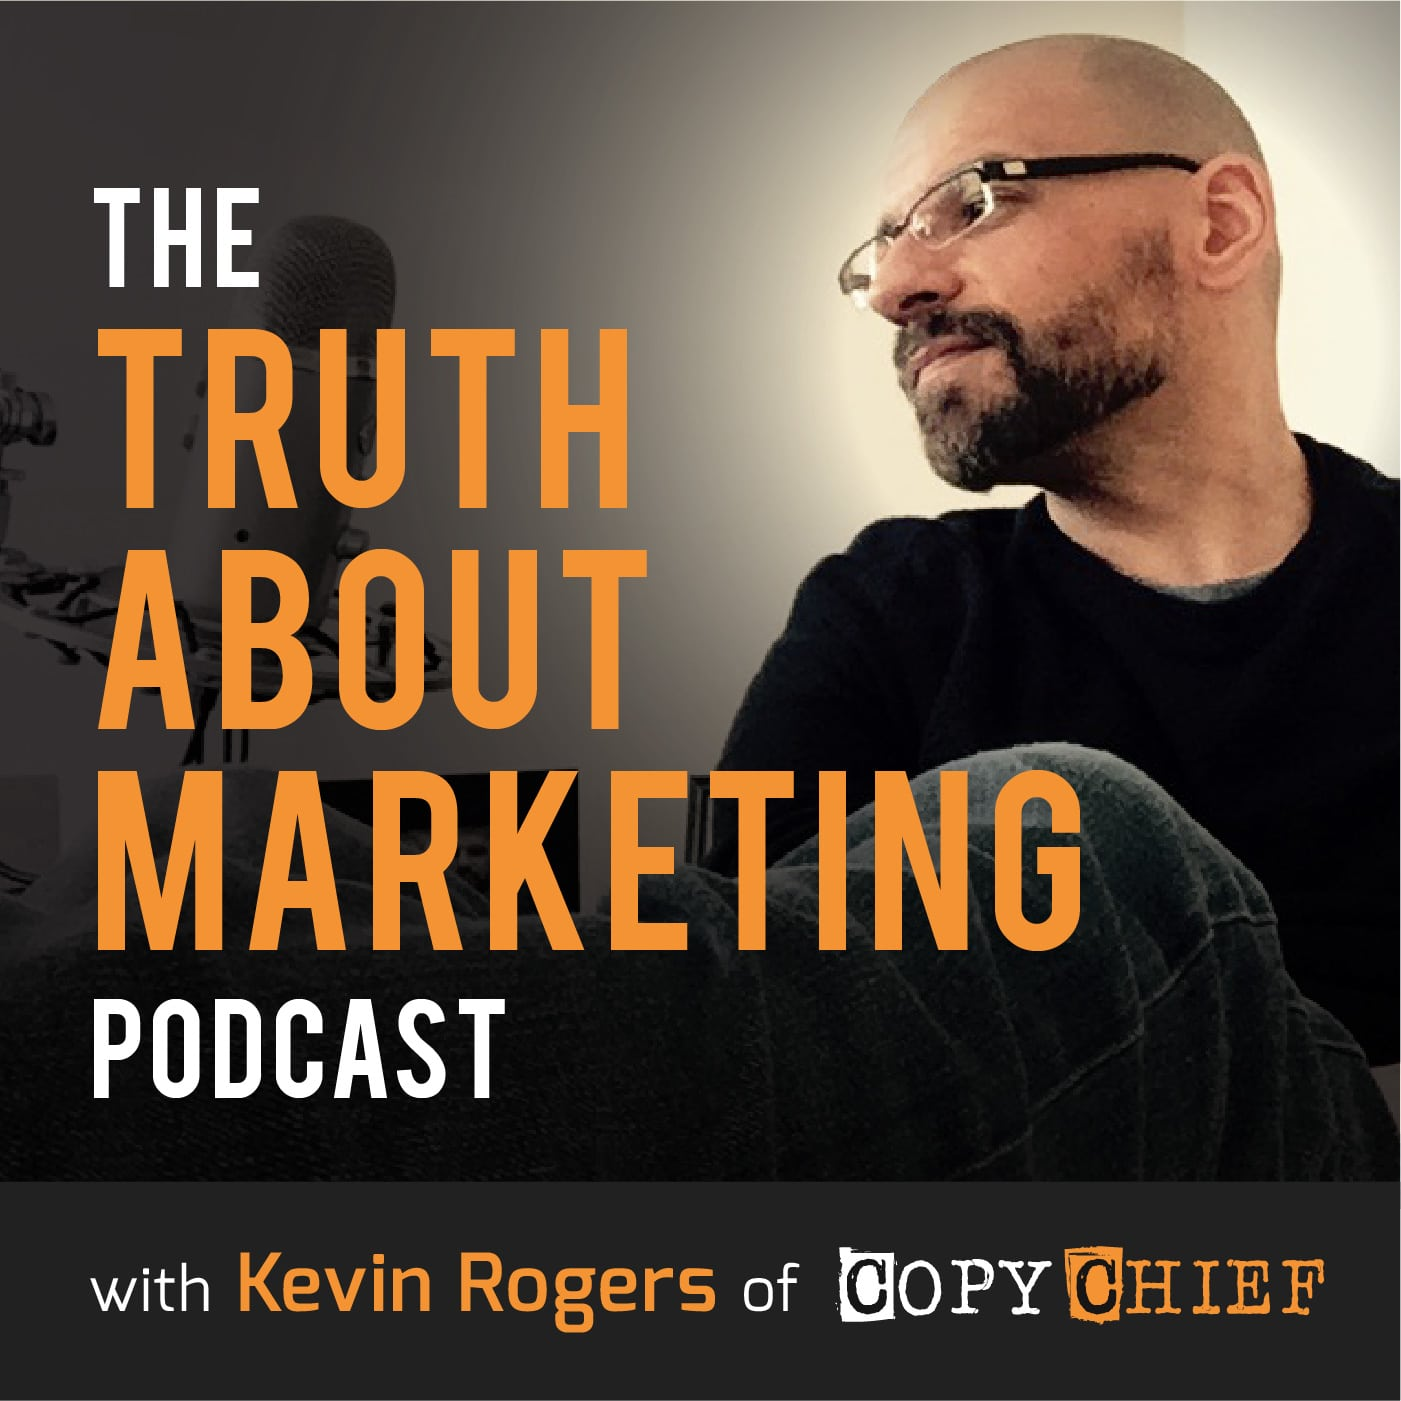 The Truth About Marketing Podcast